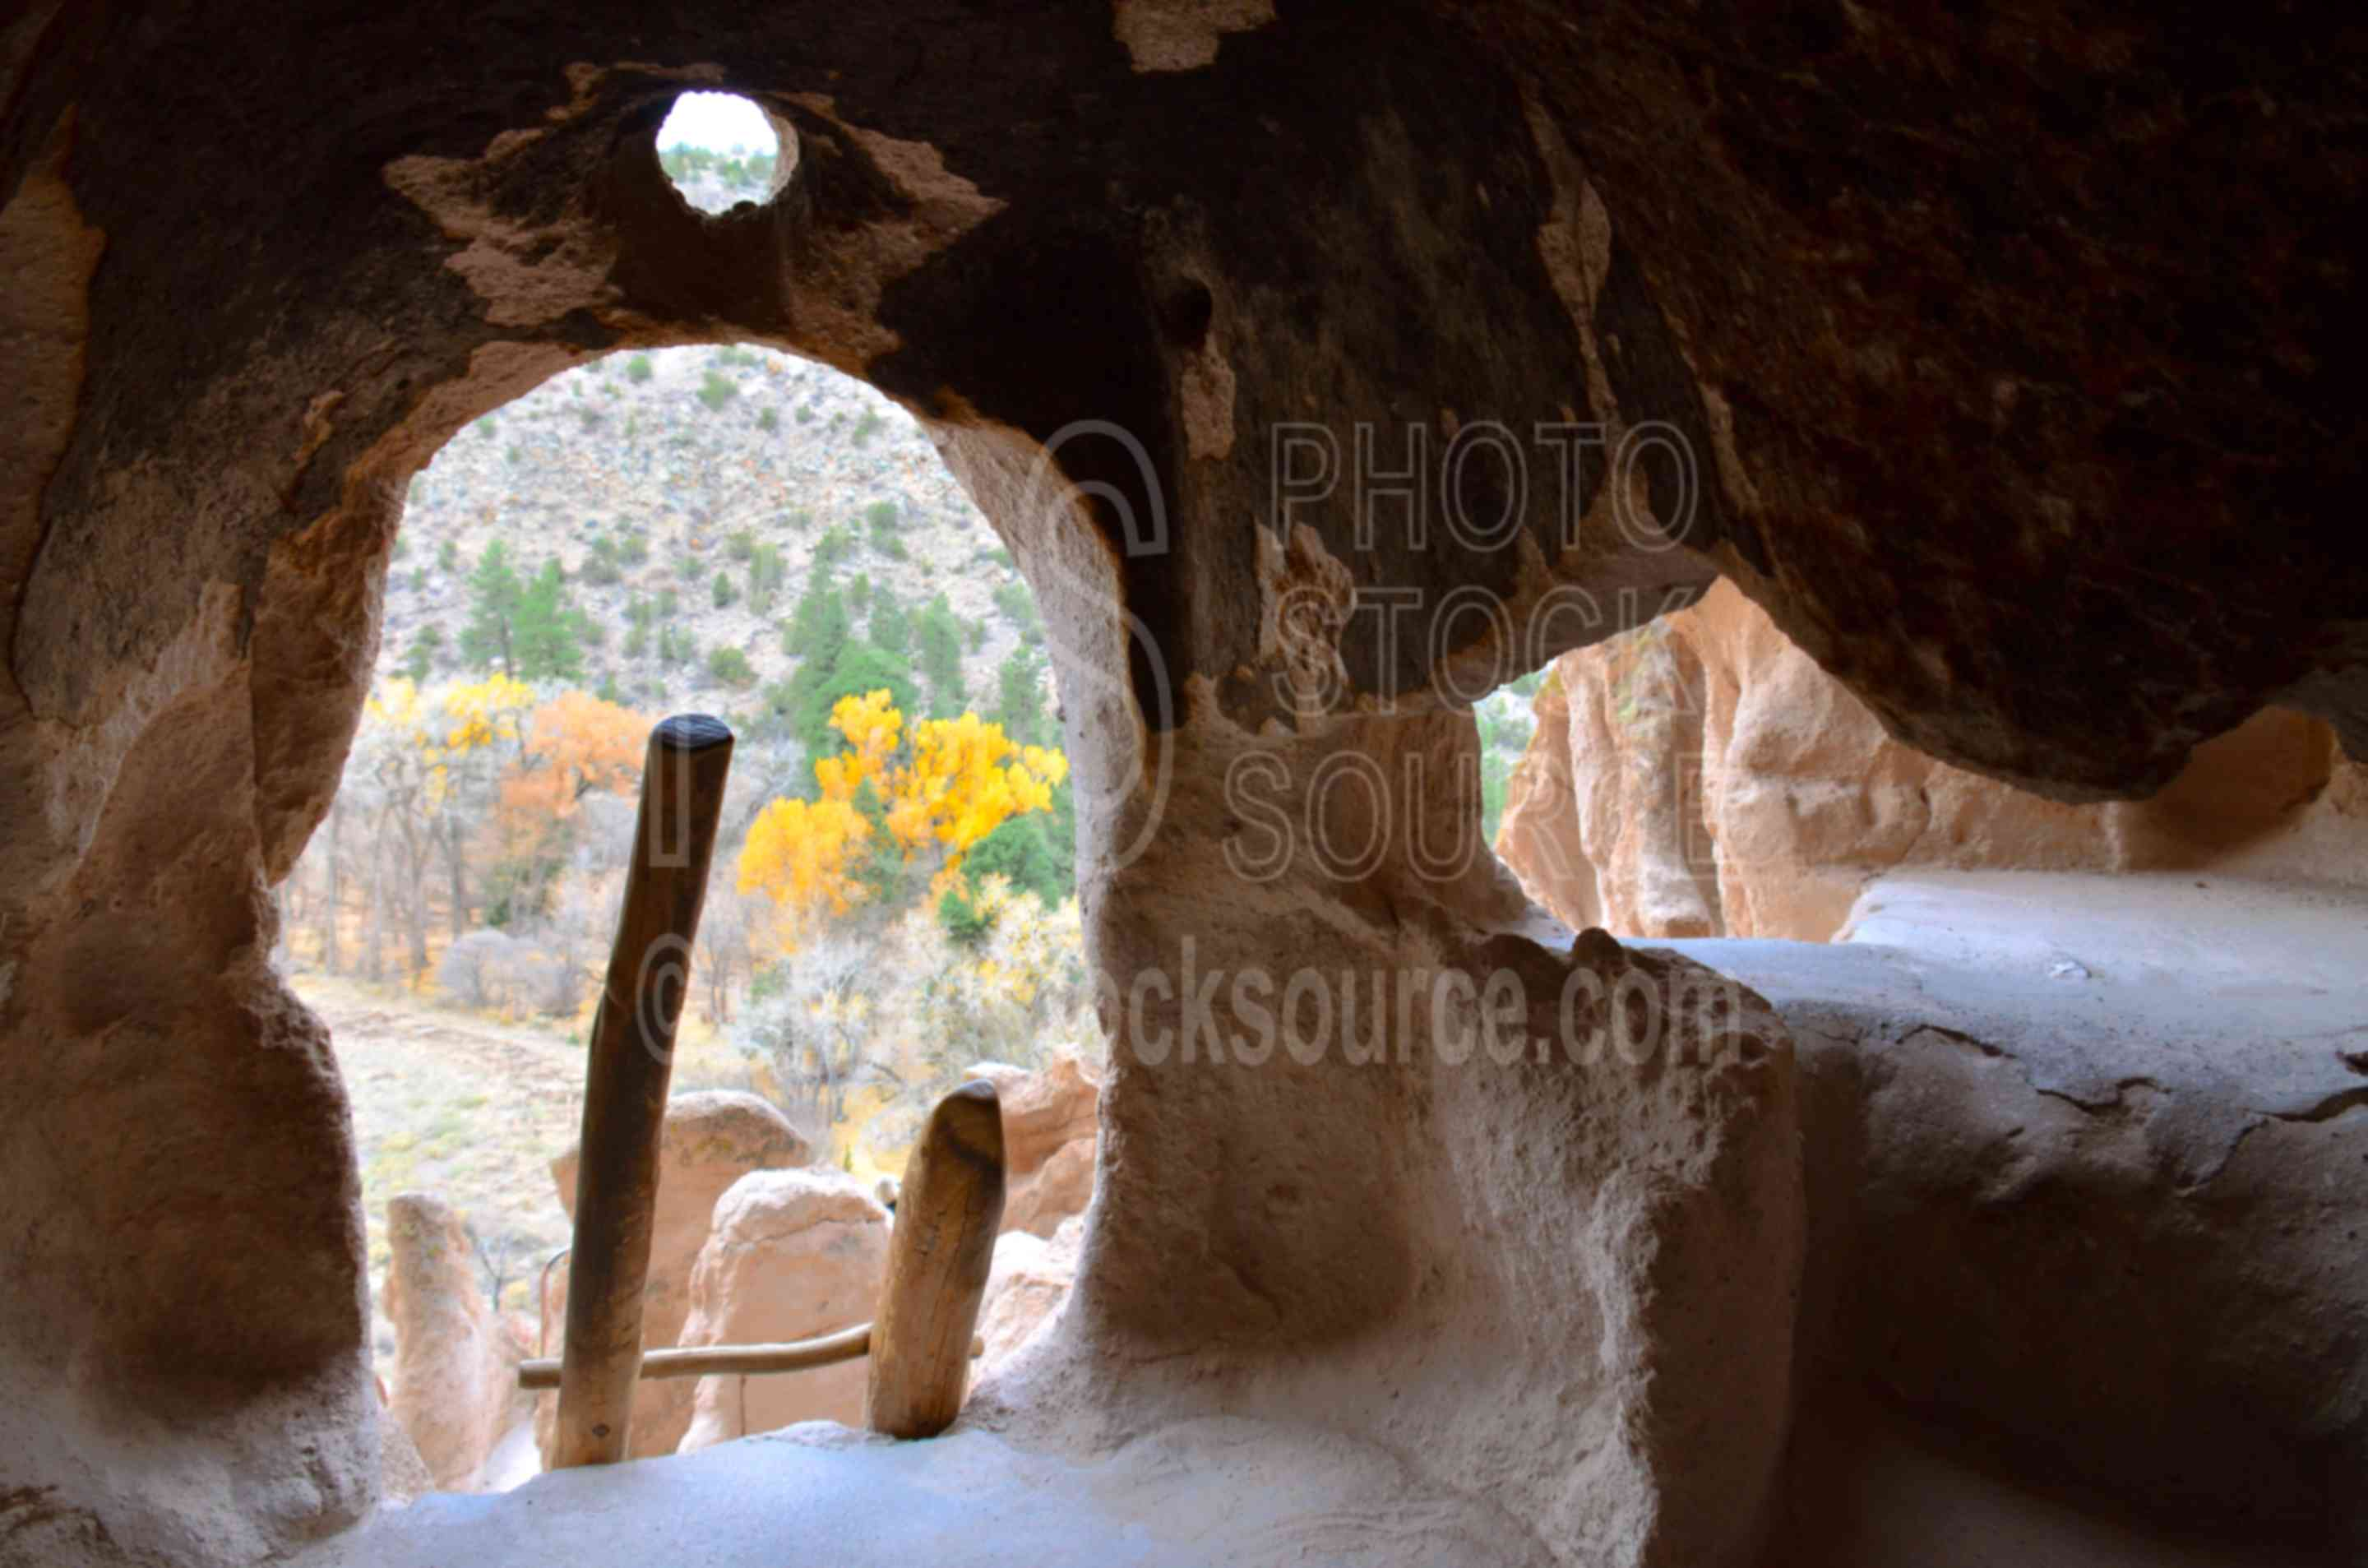 Long House Ladder and Caves,ladder,cave,niche,native american,american indian,ruin,house,archeology,stone,building,dwelling,cliff,bandelier,national monument